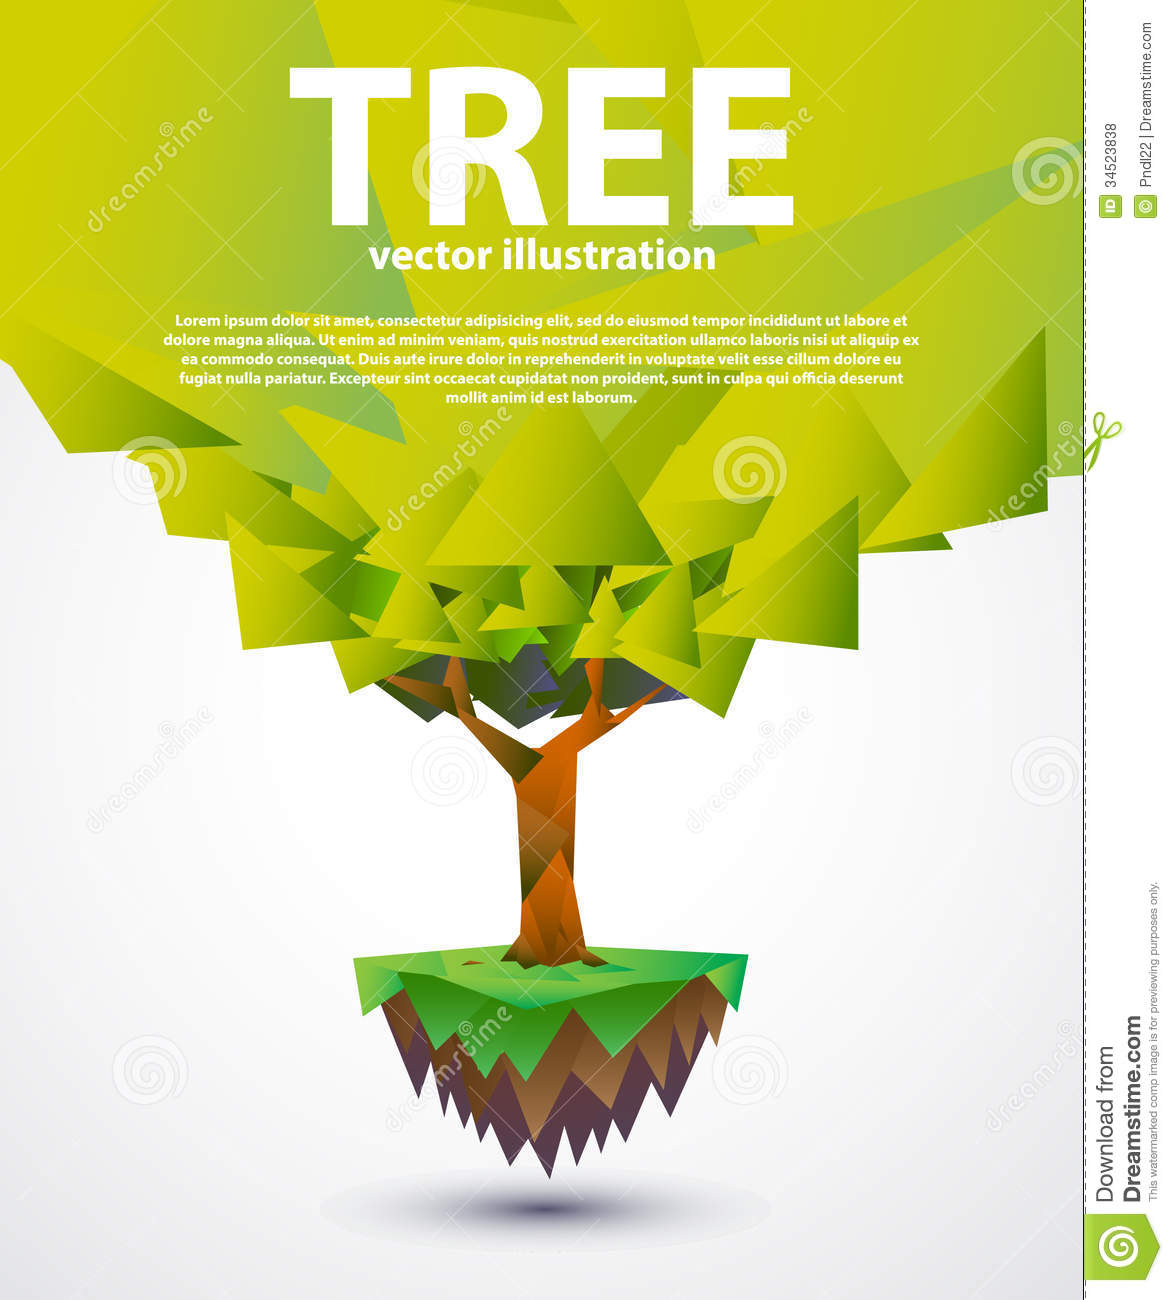 Tree Banner Design Royalty Free Stock Photos - Image: 34523838